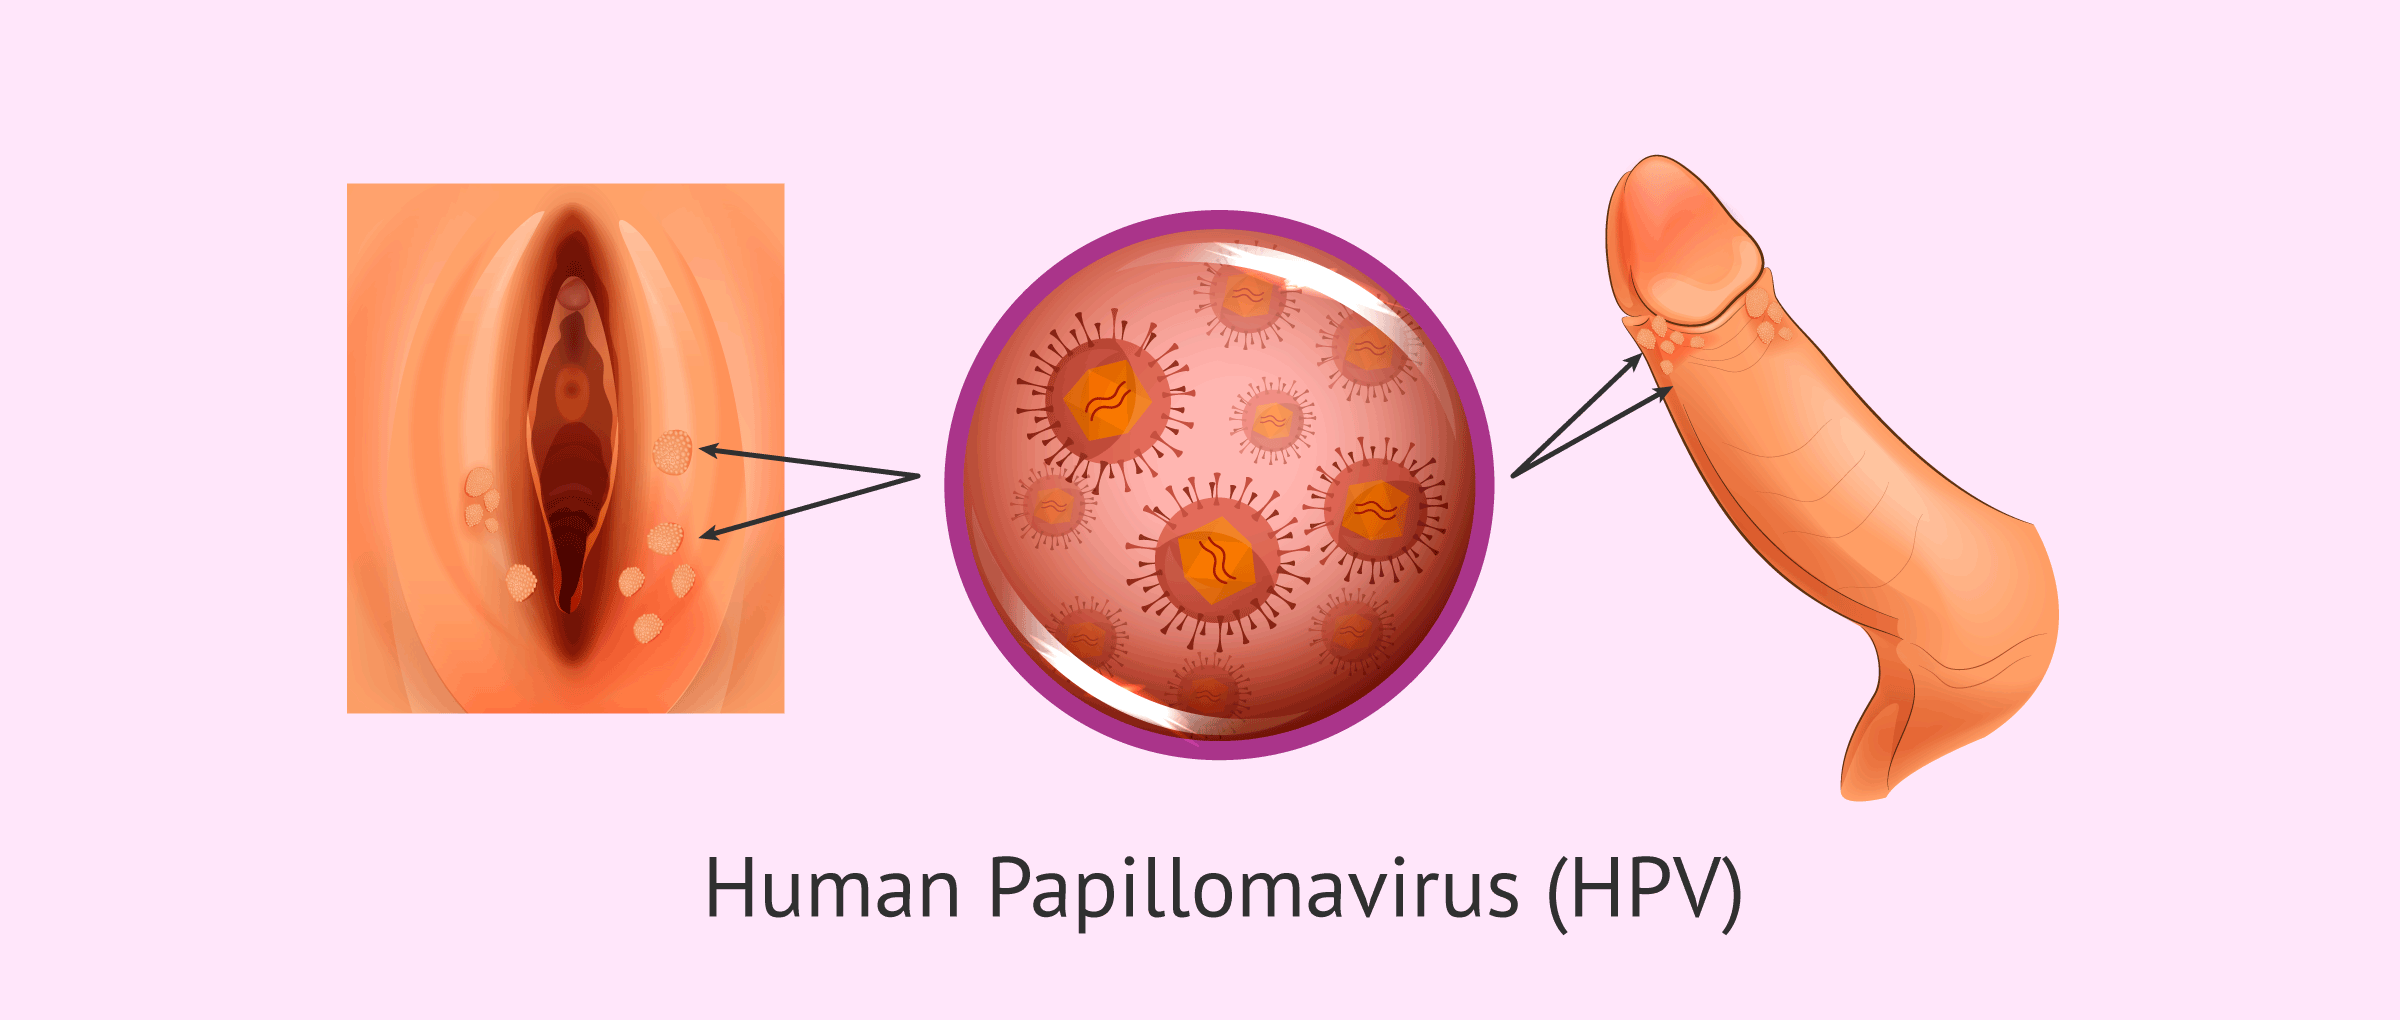 Hpv type that causes warts